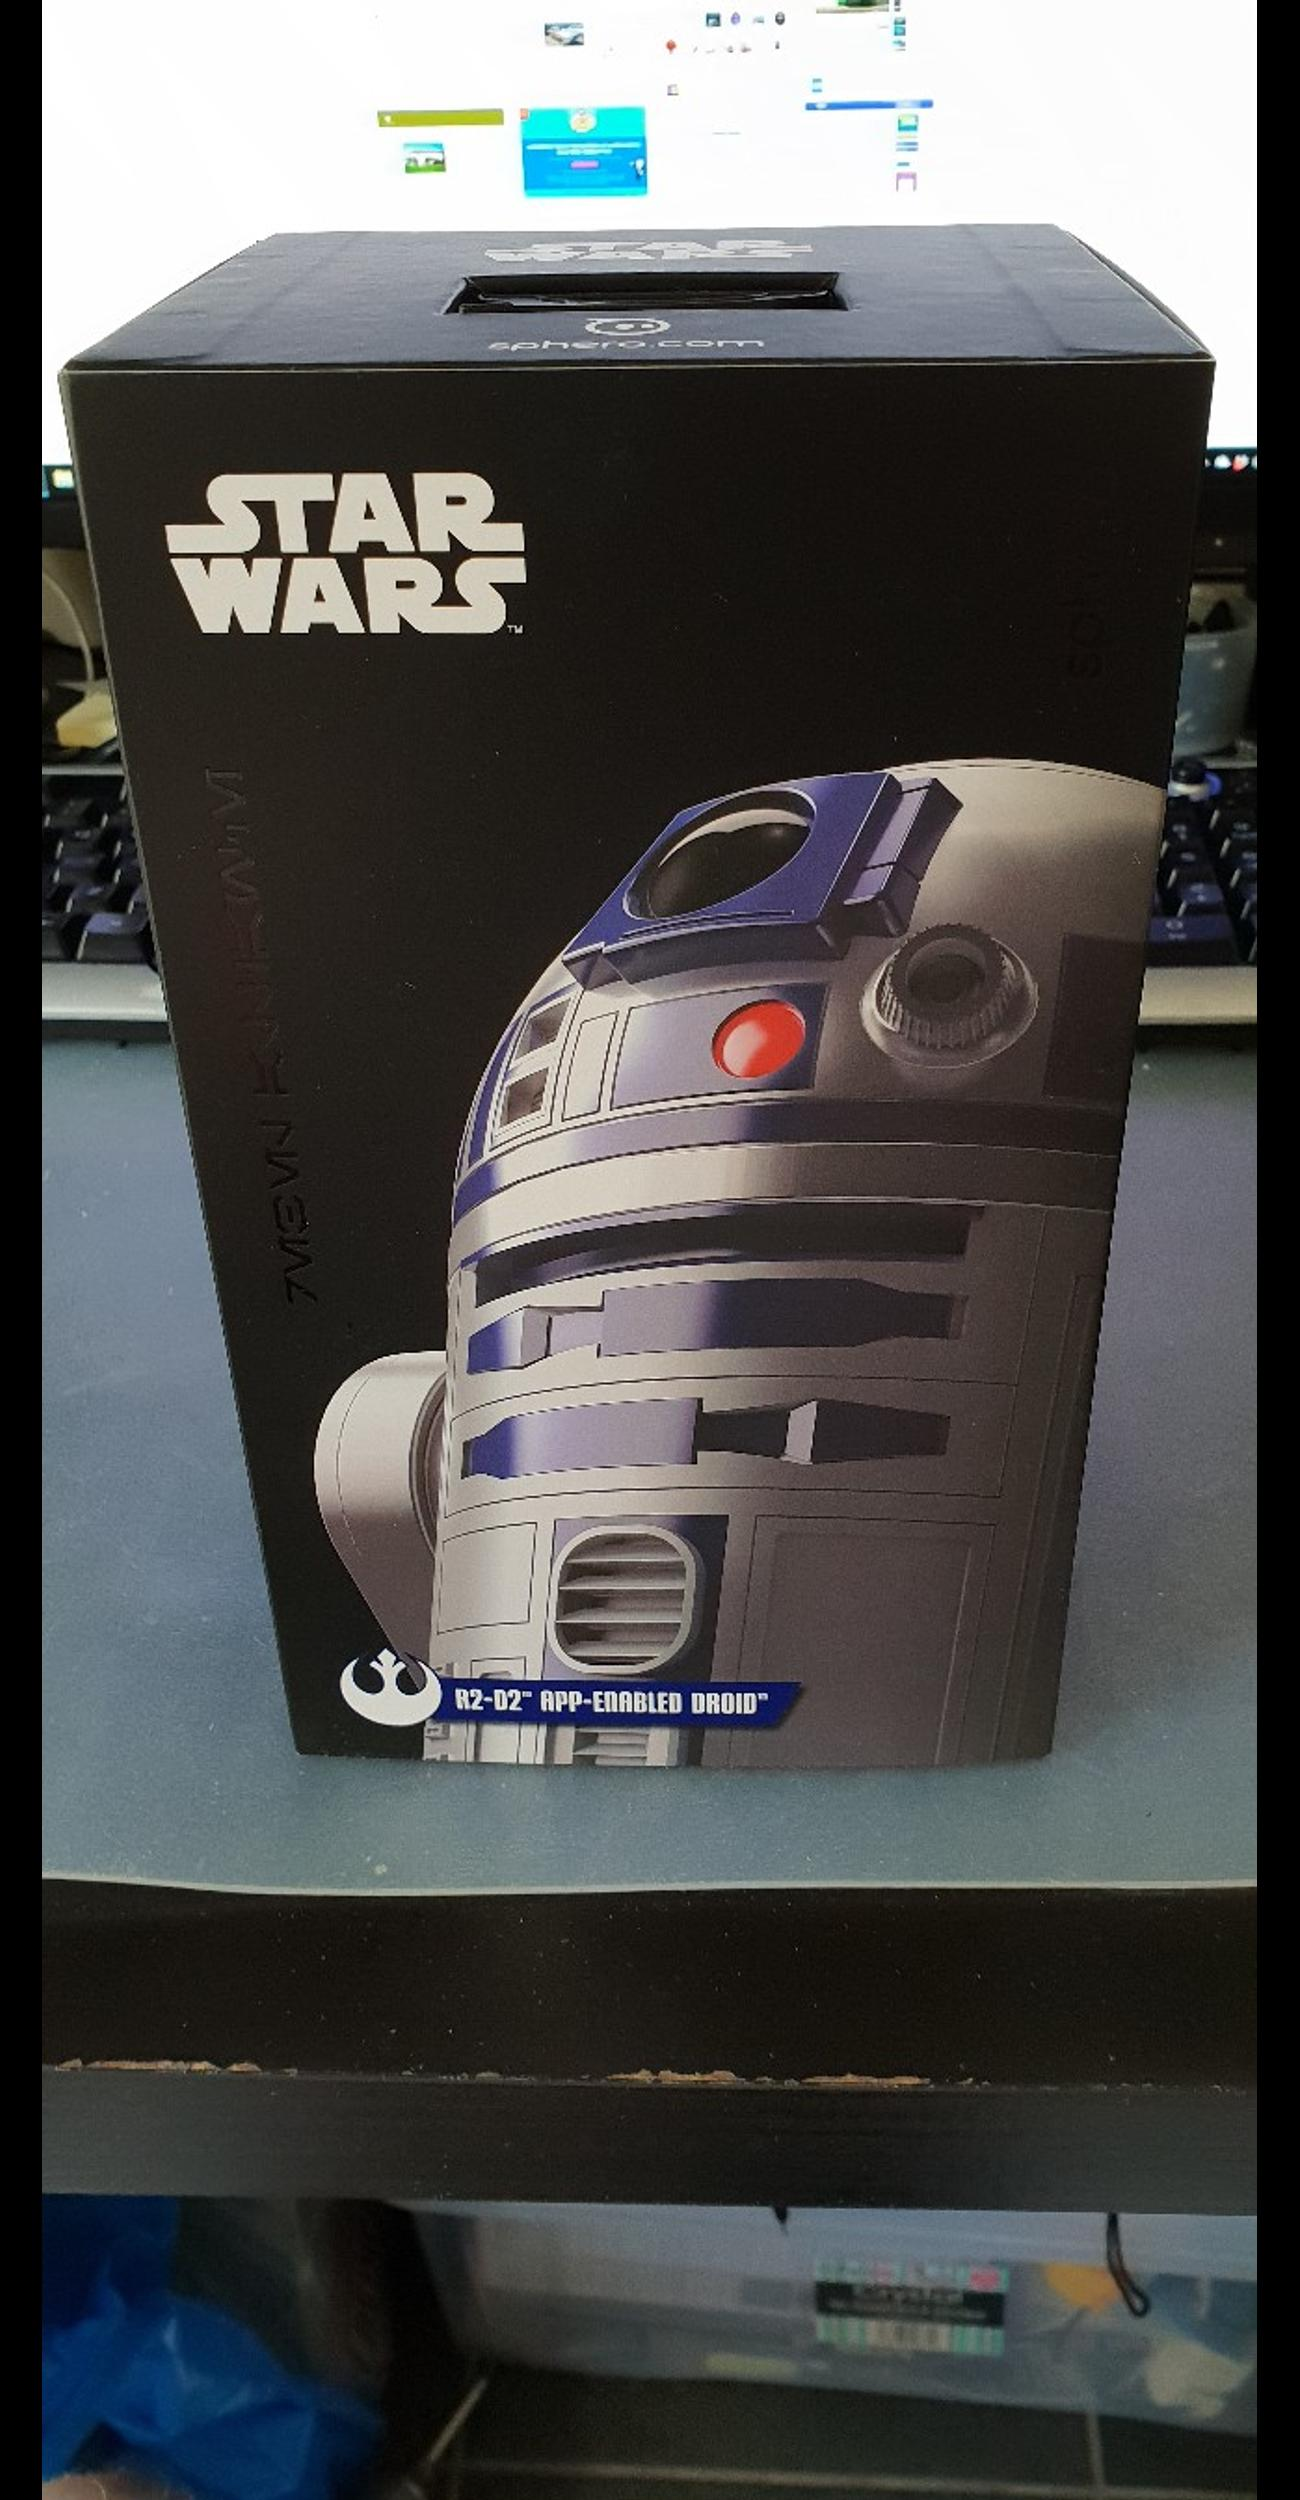 Star wars R2D2 SPHERO ANDRIOD CONTROLLED ROB